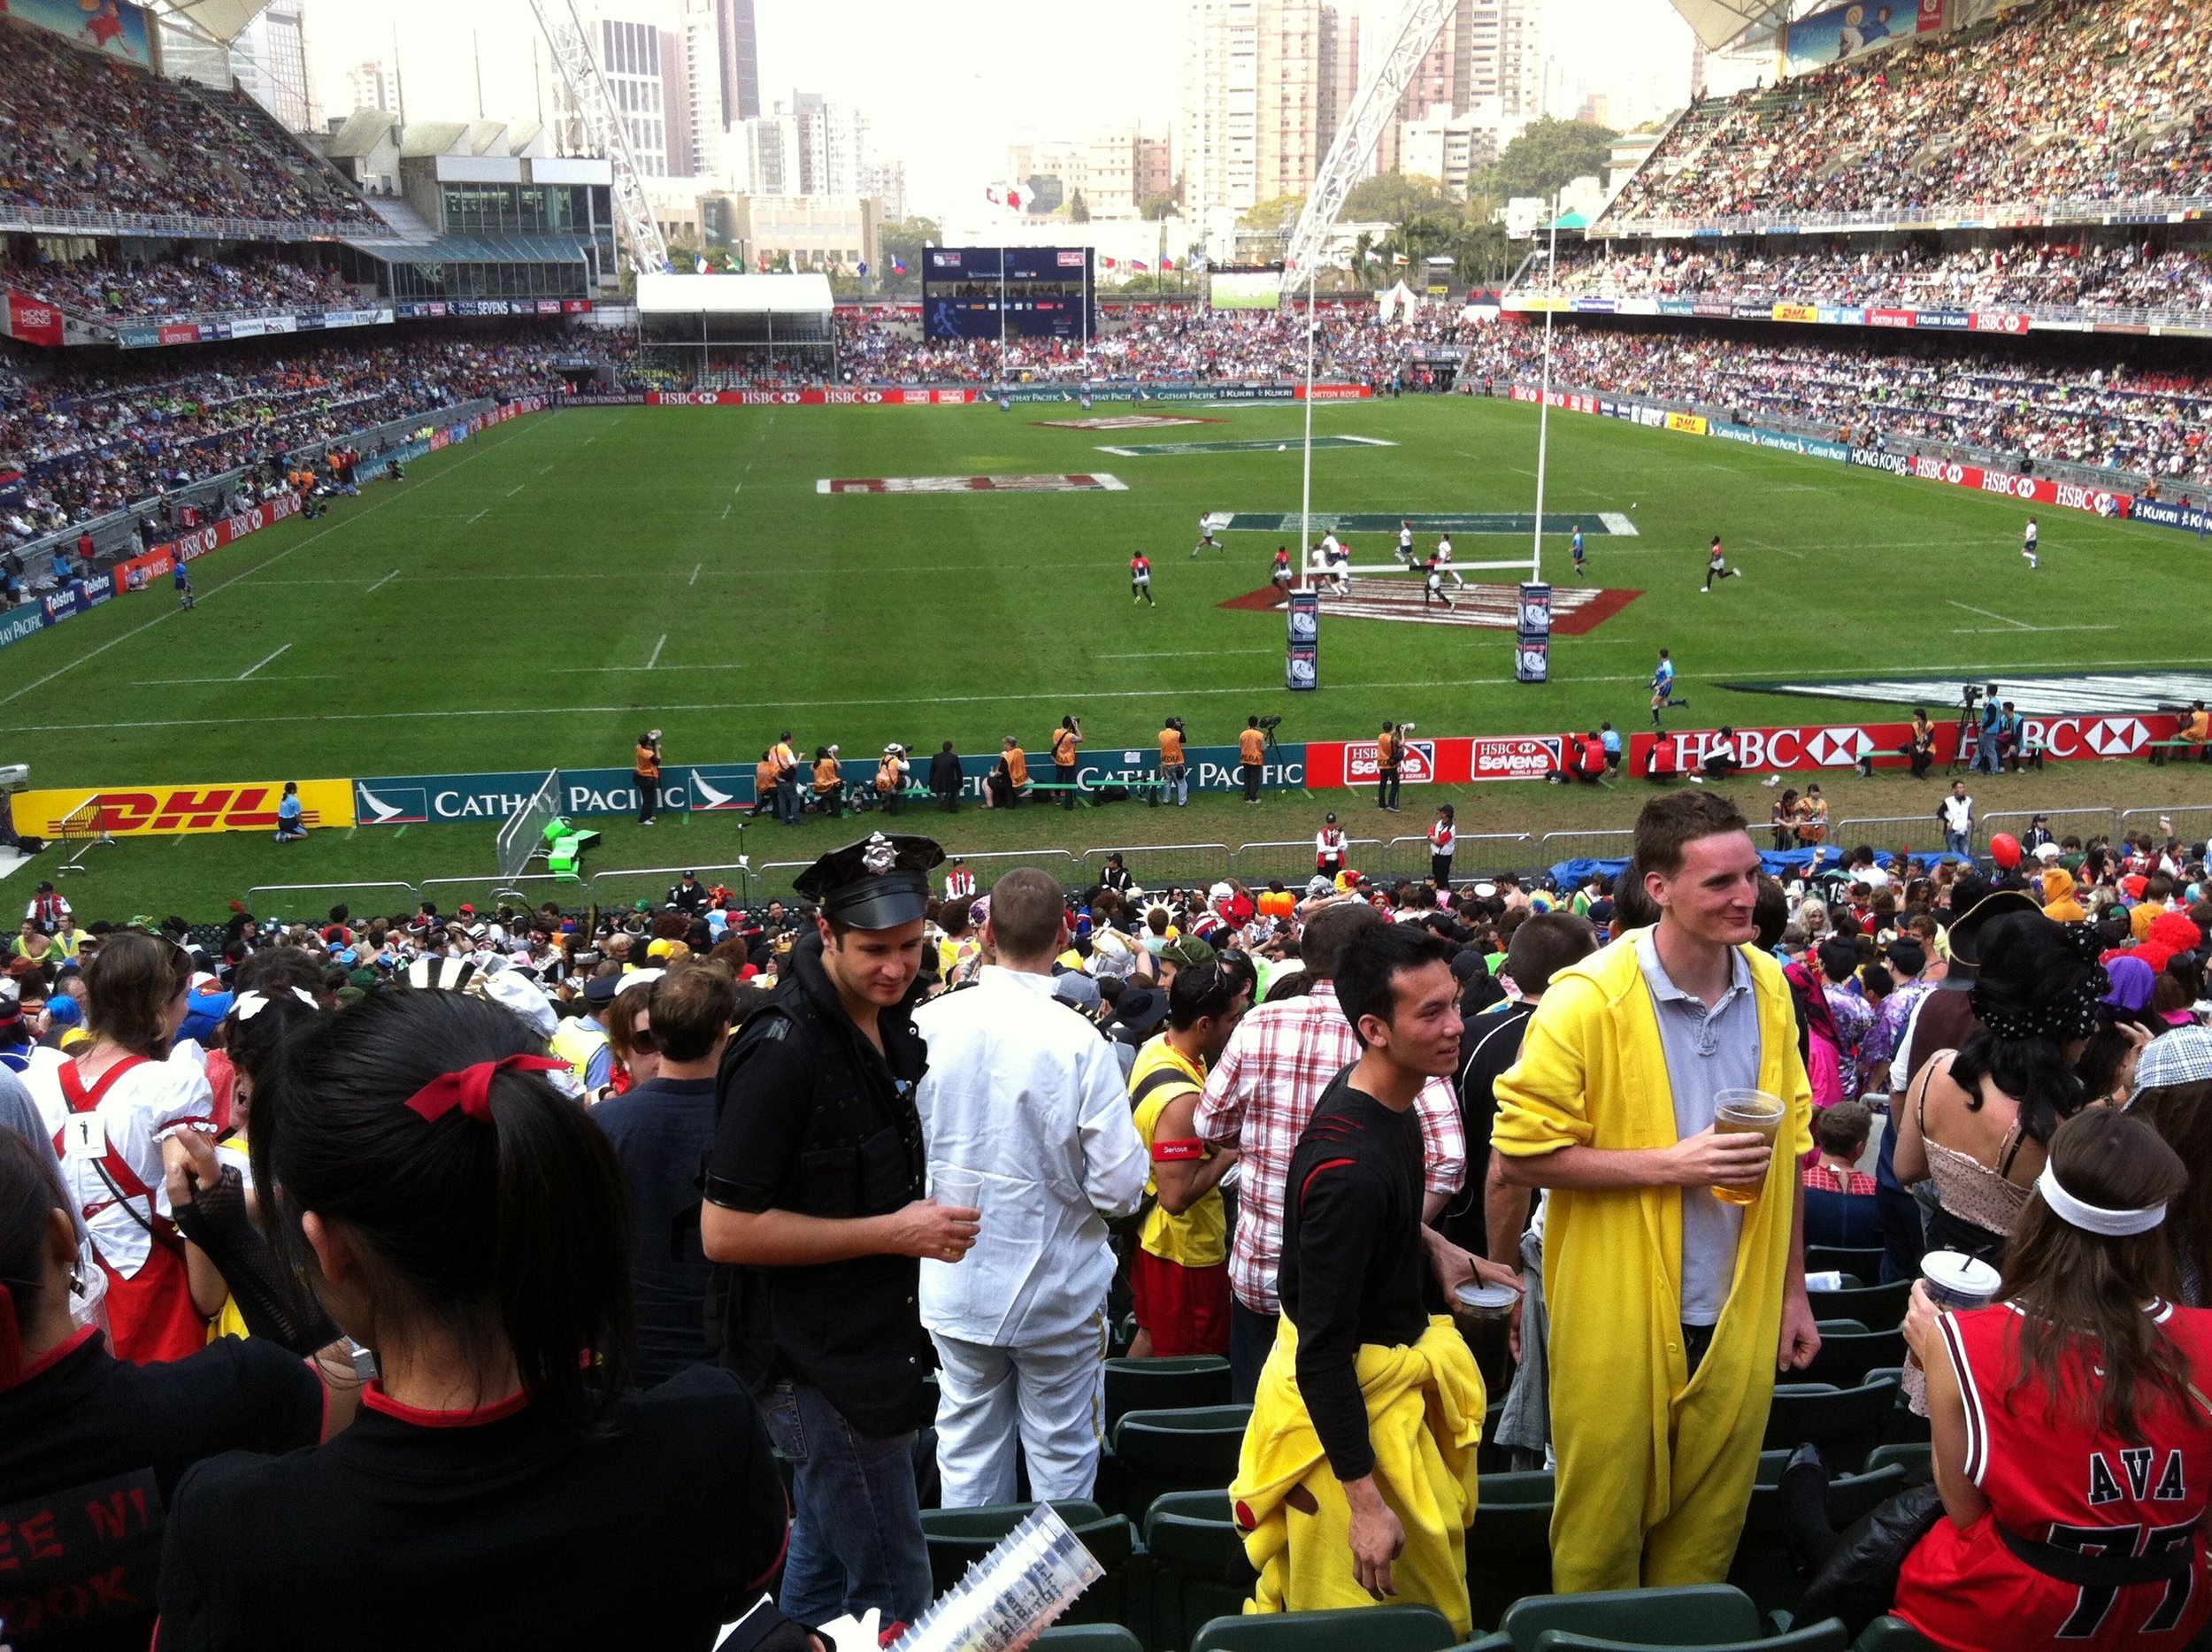 The south stand at the Hong Kong Rugby Sevens